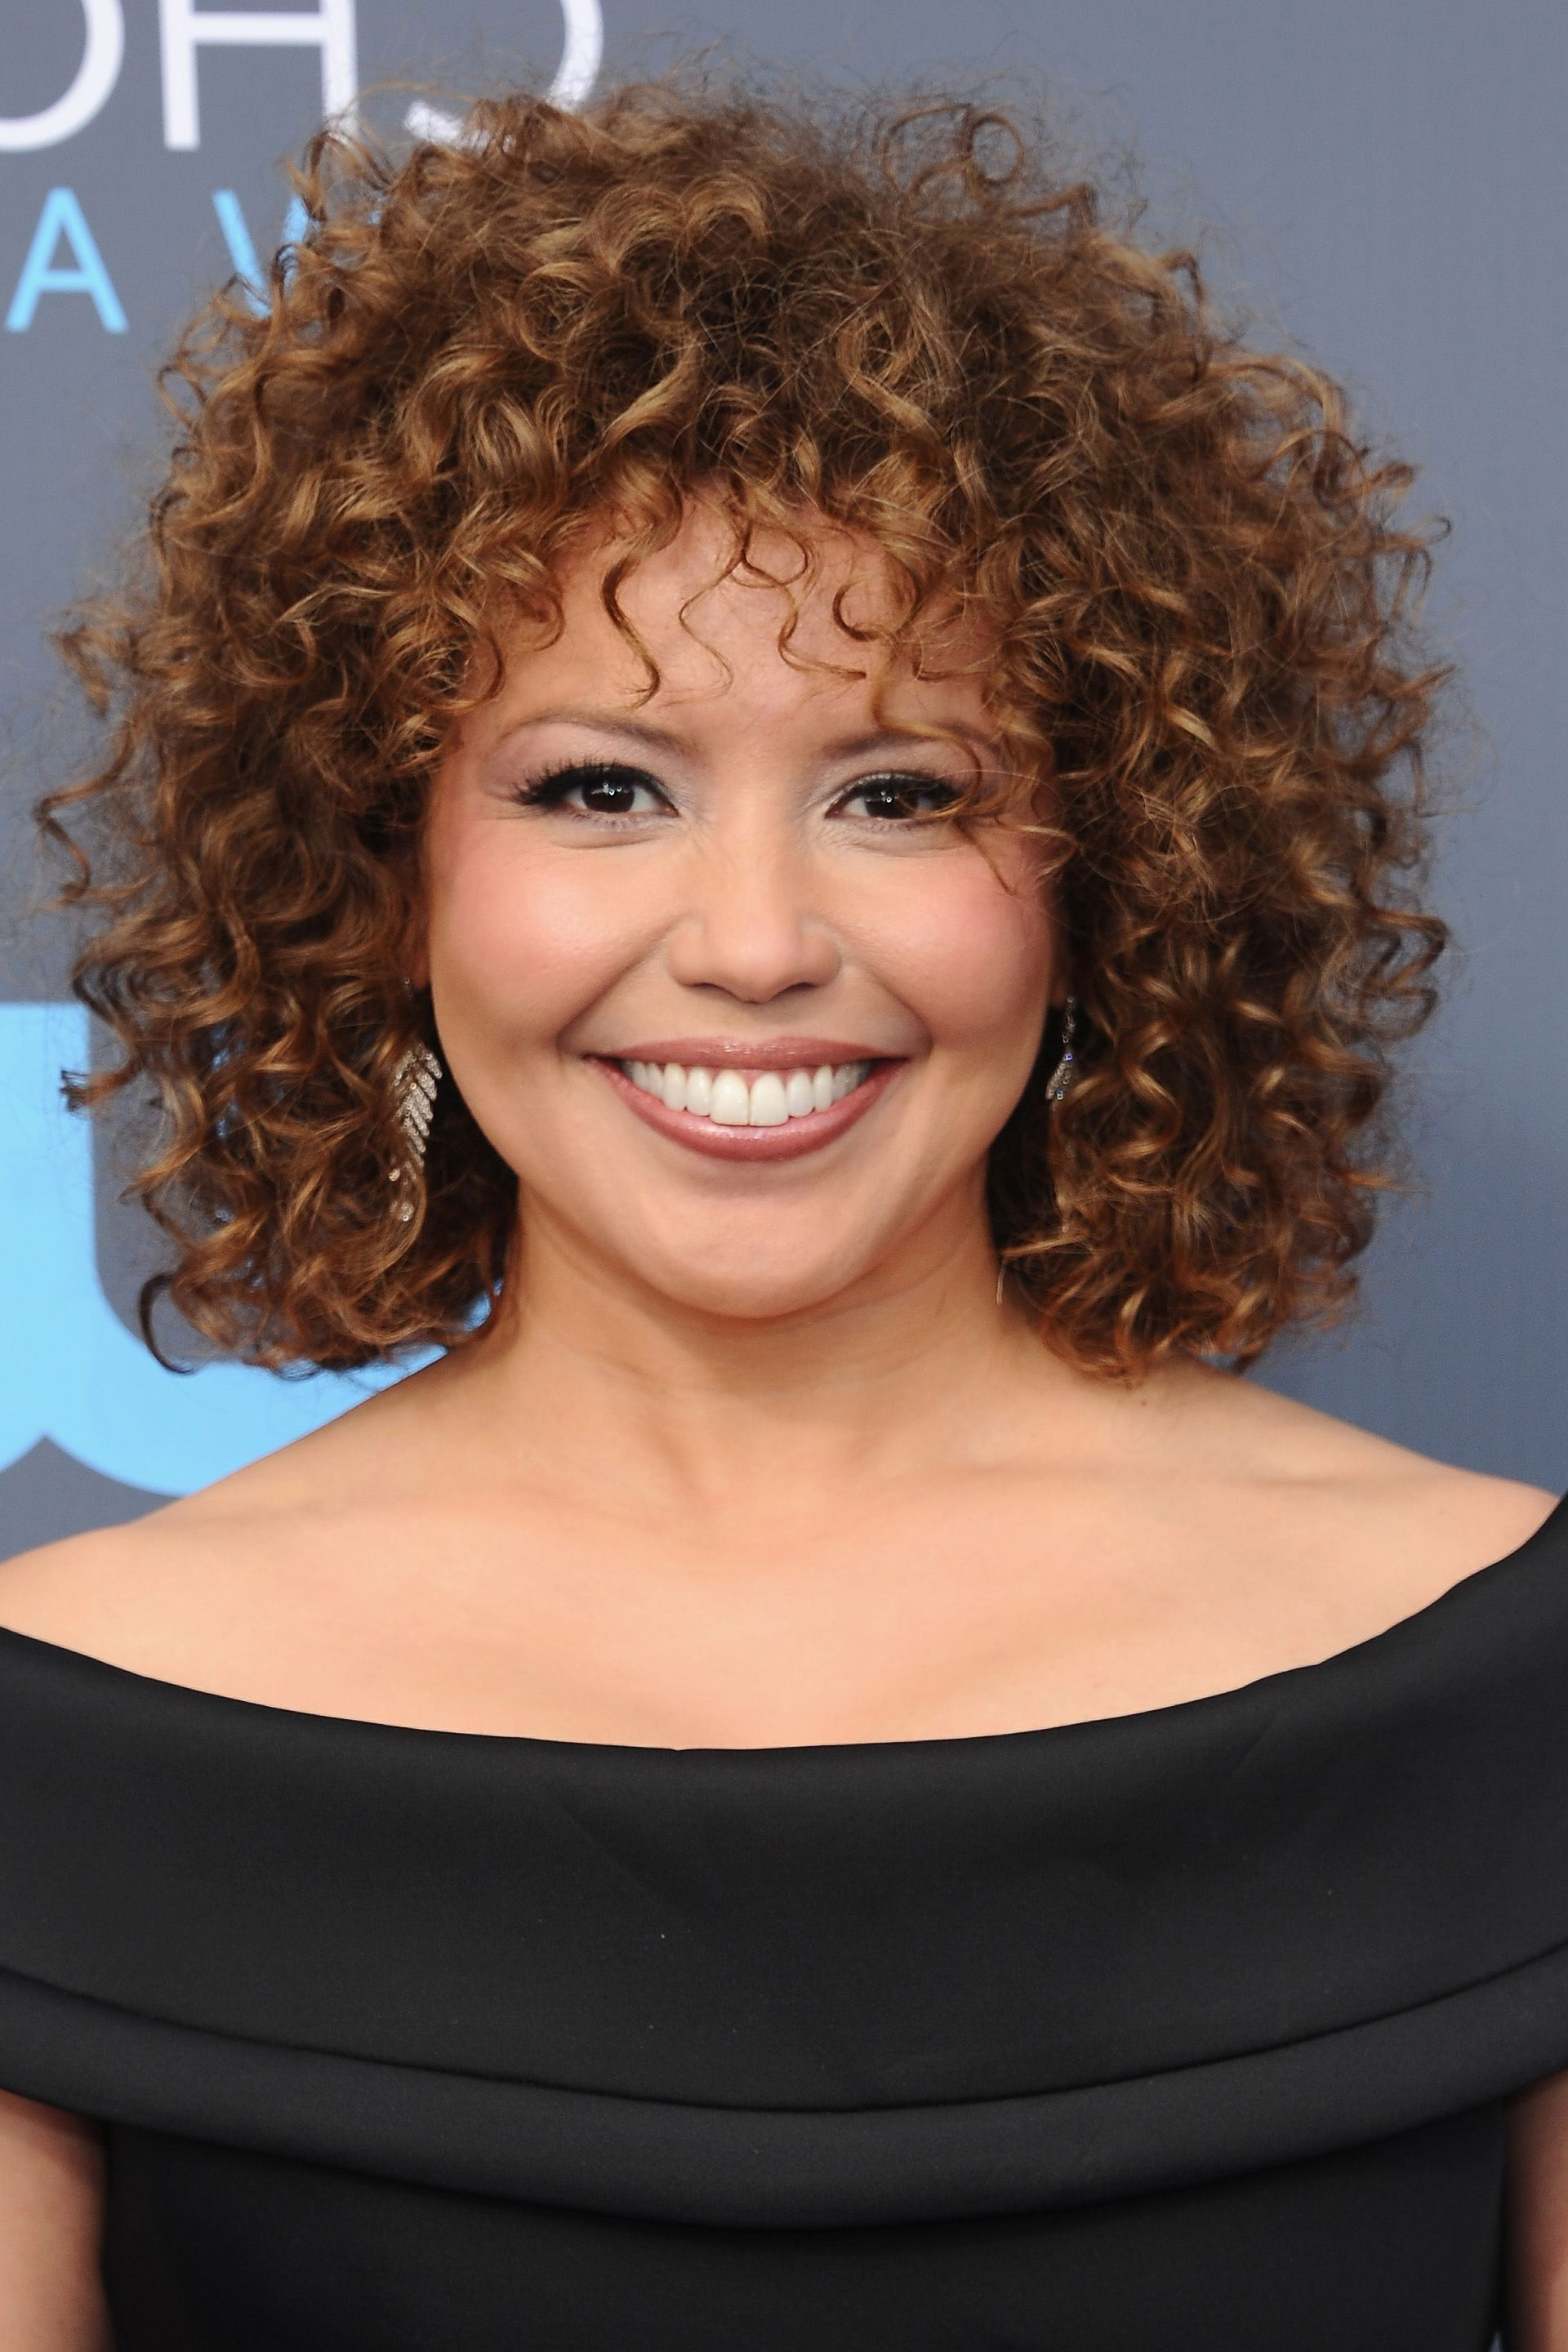 20 Celebrity Short Curly Hair Ideas – Short Haircuts And Hairstyles Within Natural Textured Curly Hairstyles (View 21 of 25)